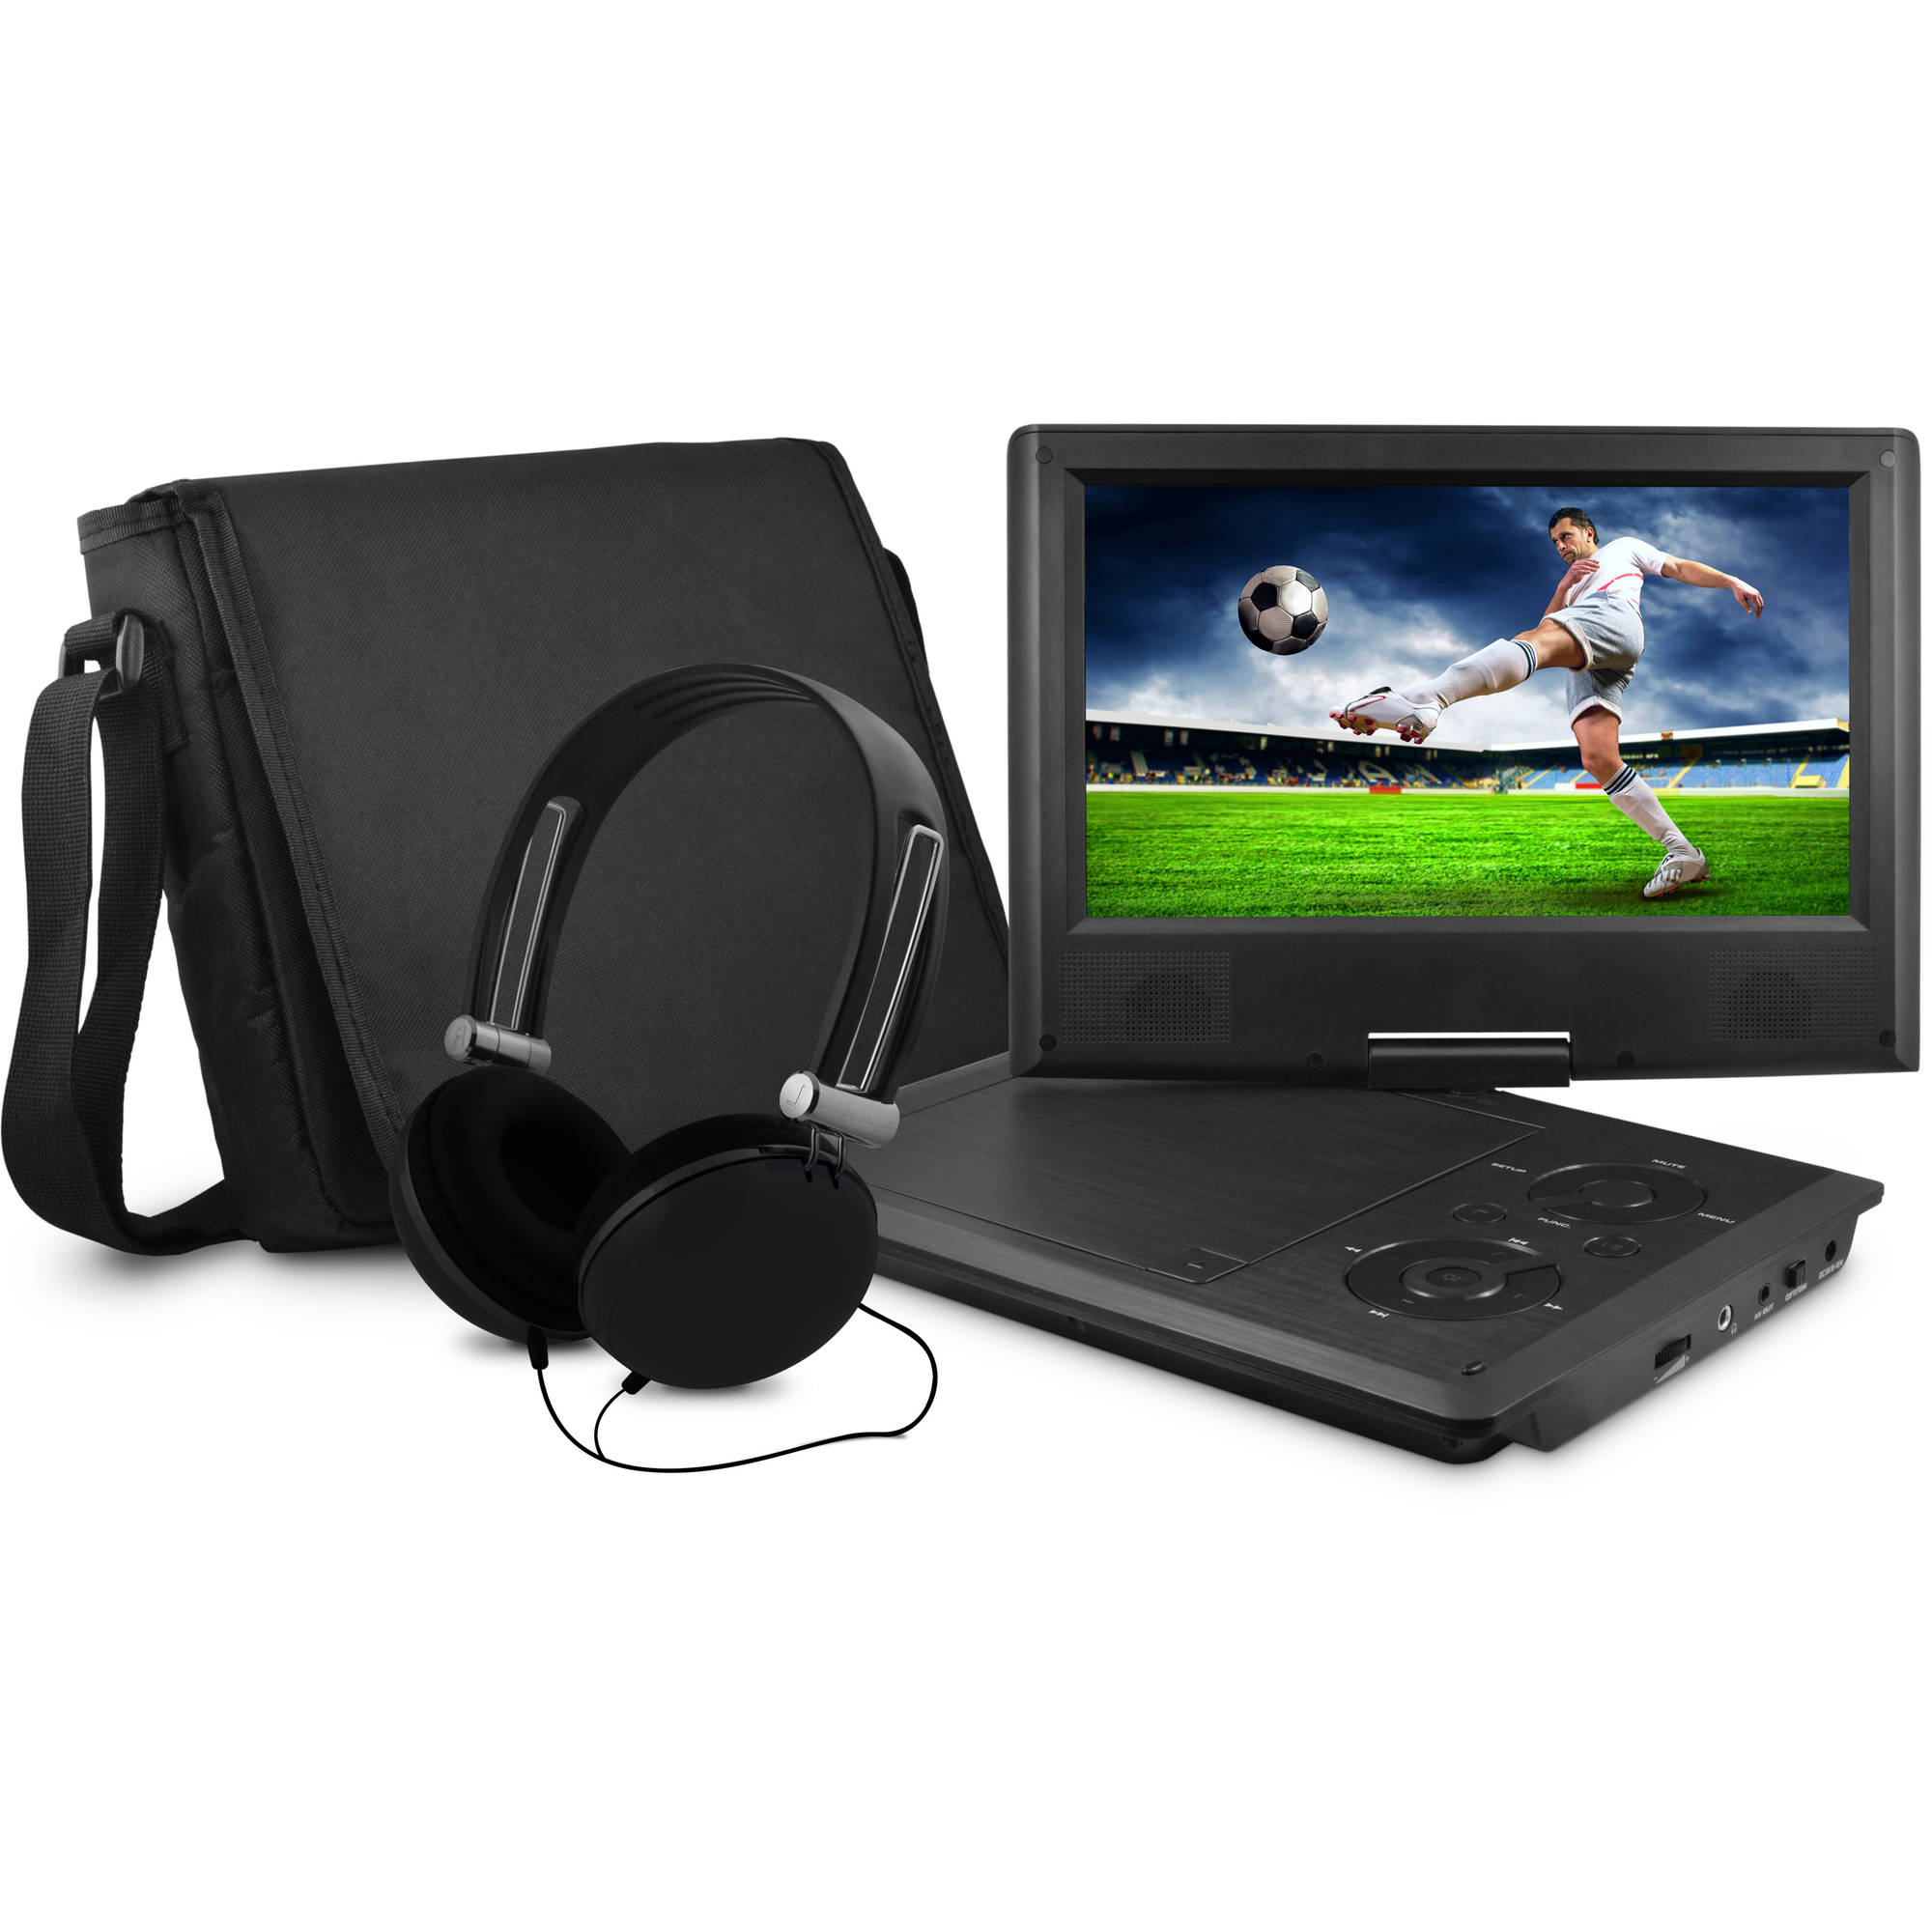 "Onn by Walmart 9"" portable dvd player with matching headphones and bag"